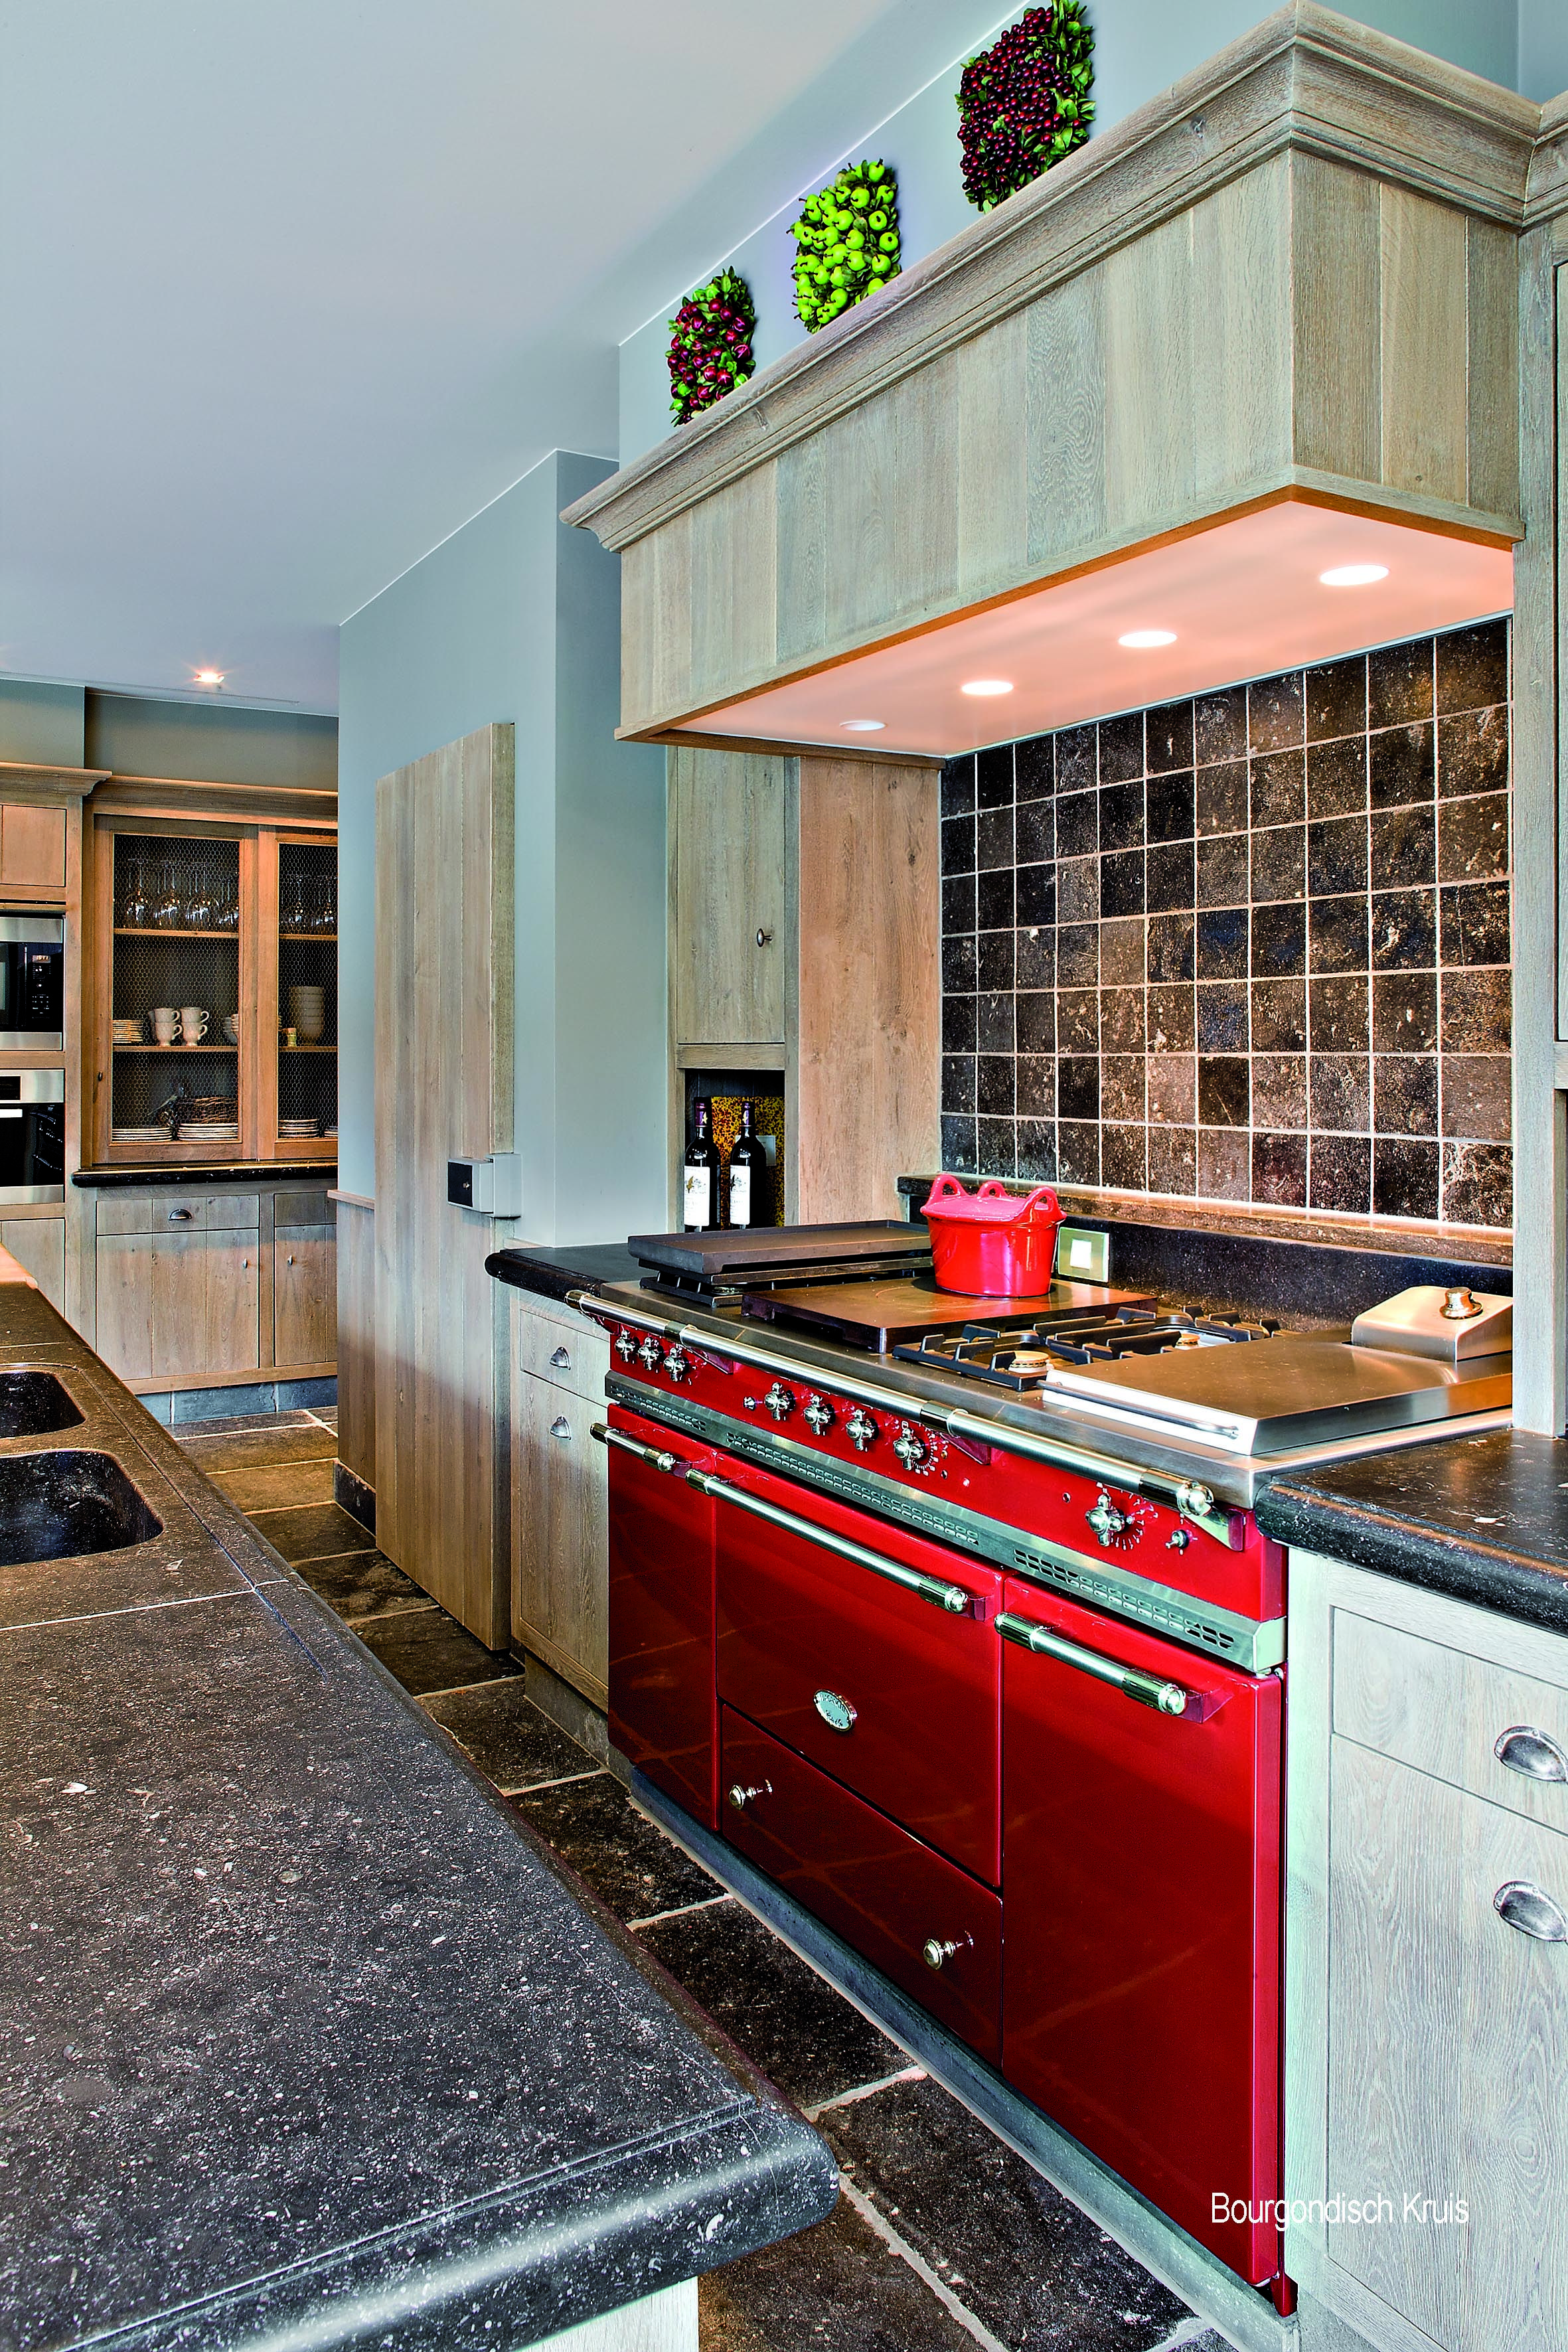 60 Lacanche Citeaux Range In Cherry Red Featuring 2 Ovens Gas And Convection Electric And A Warming Cupboard Citeaux Kitchen Remodel Kitchen Themes Home